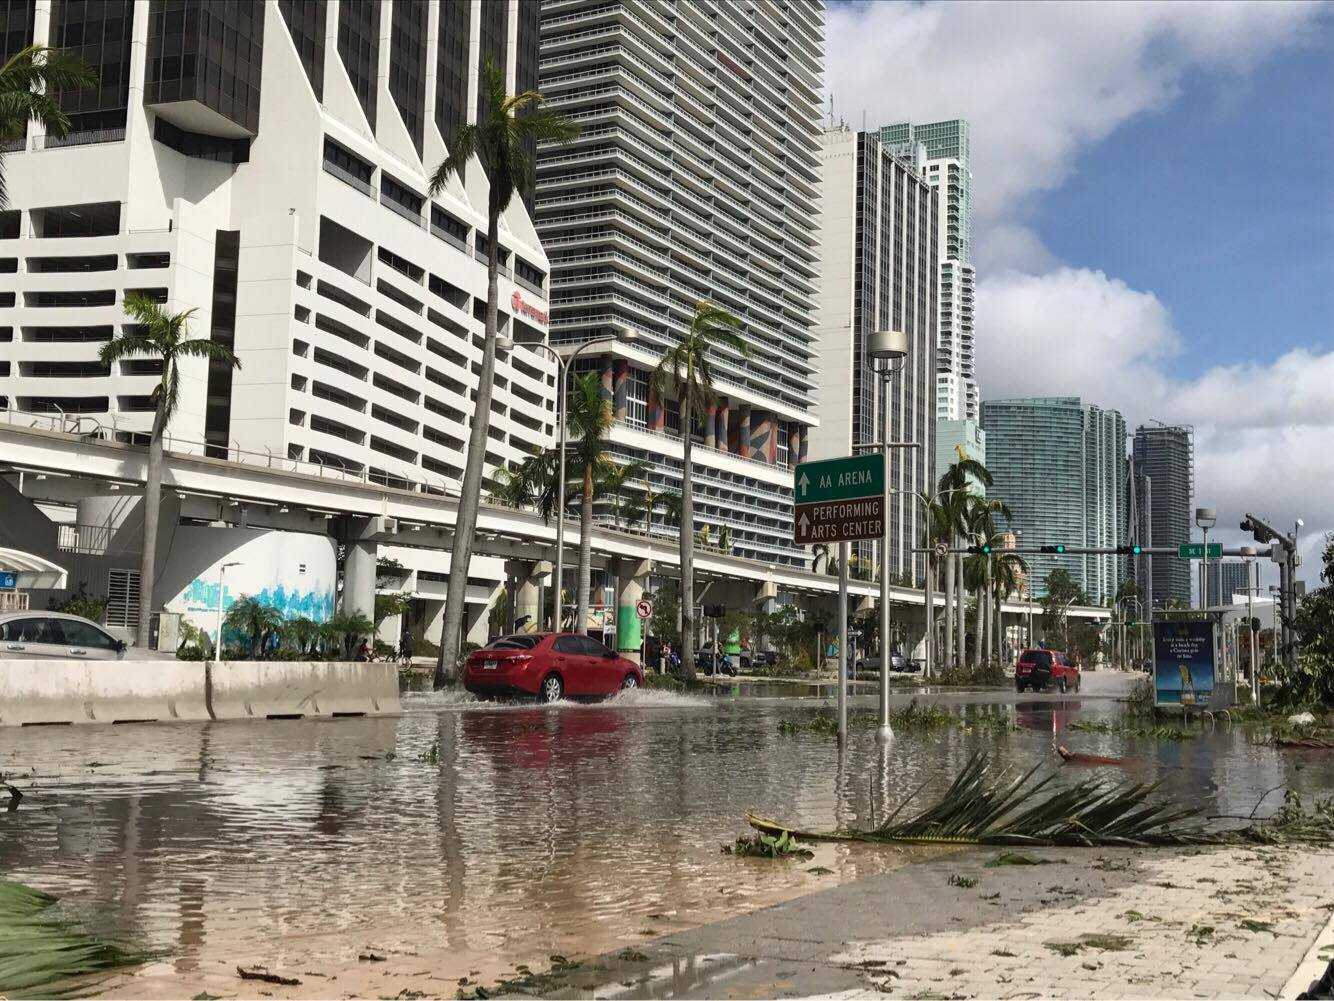 Downtown Miami on Sept. 11, 2017, after it was hit by Hurricane Irma. (The Epoch Times)